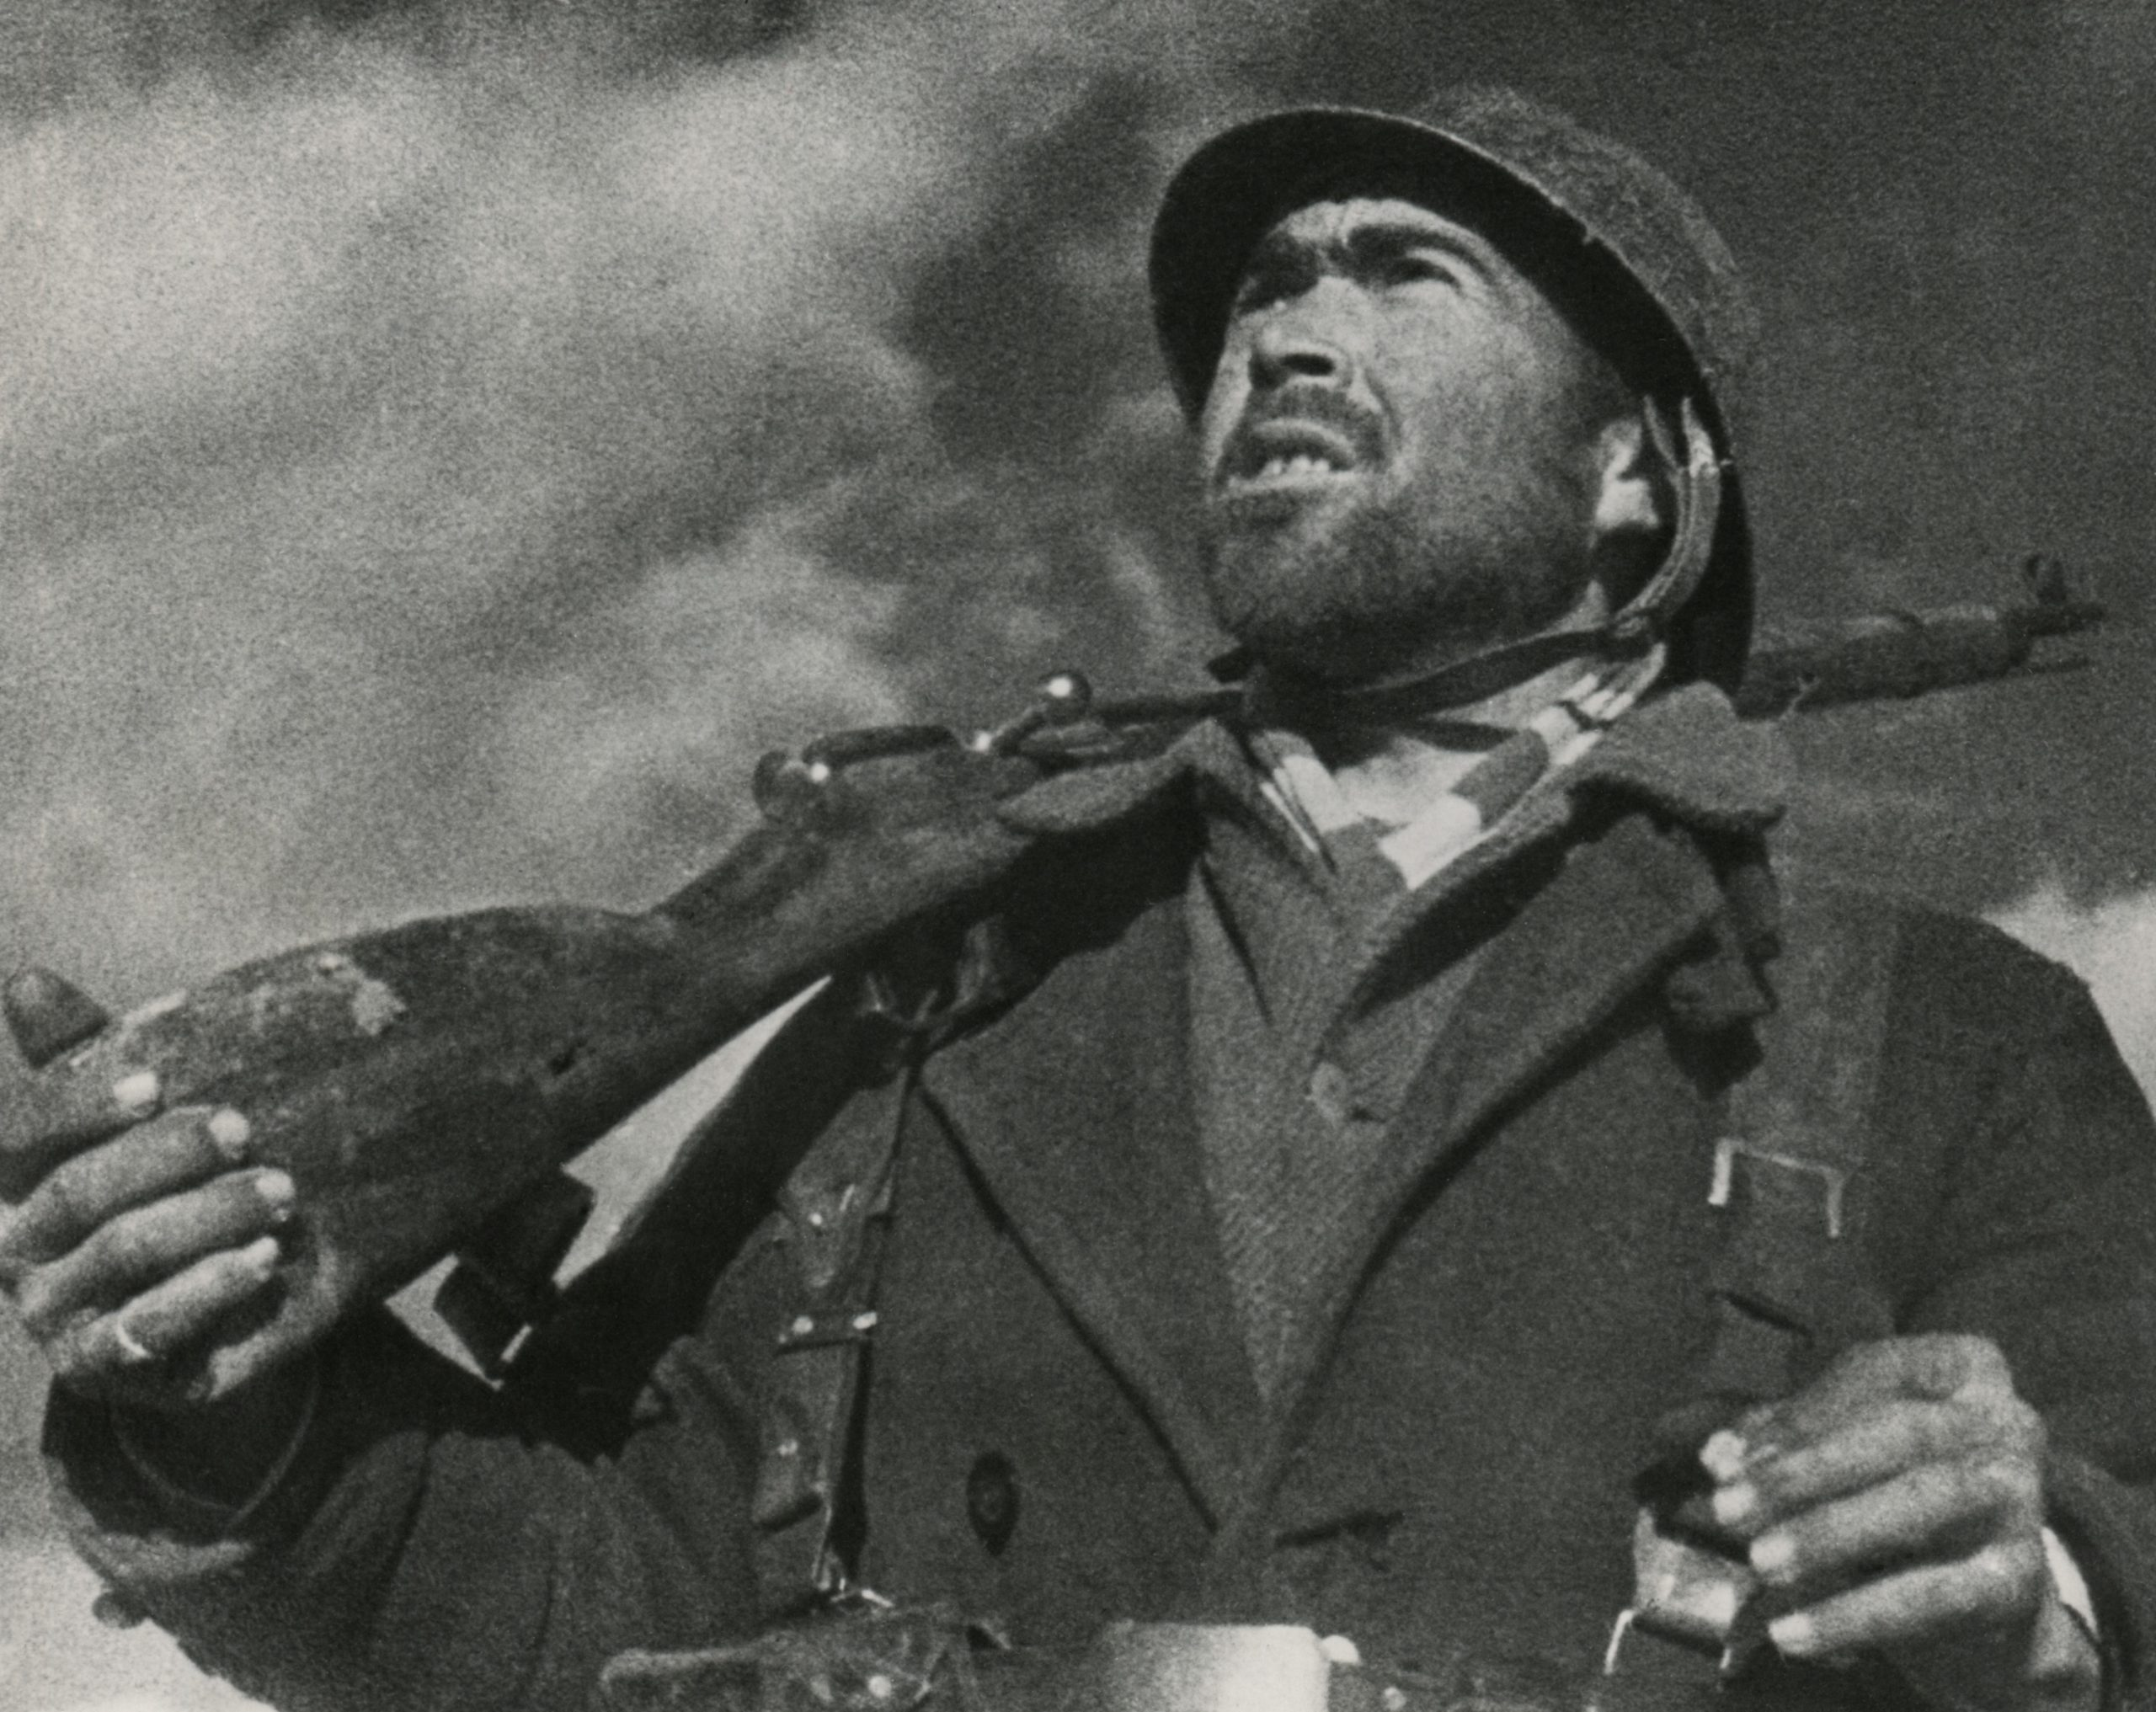 A soldier of the Spanish Republican (loyalist) army holds his rifle and looks out for aeroplanes on the Guadalajara Front. April 1937